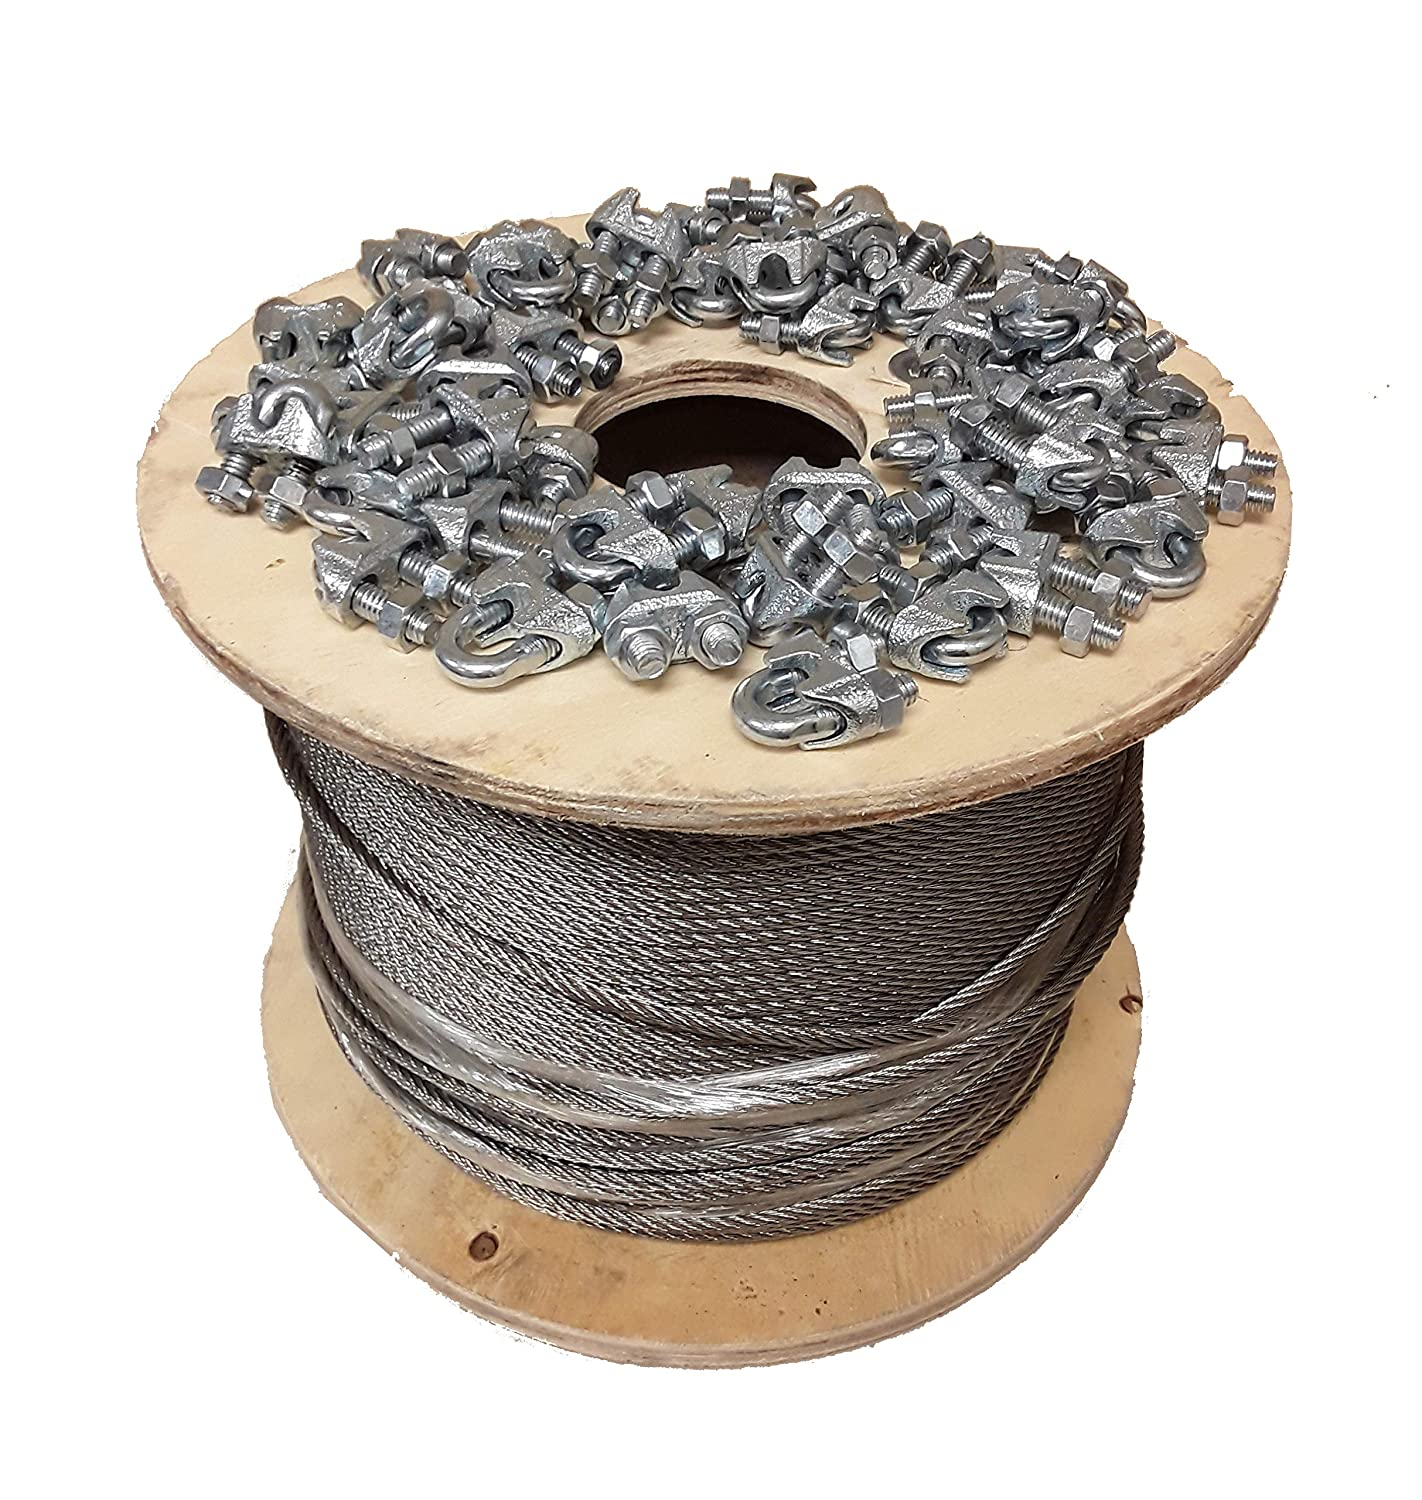 50 PCS 1//8 Cable Clamps 7 x 19 Galvanized Aircraft Cable Wire Rope 1//8 1000 ft with Cable Clamps Clips